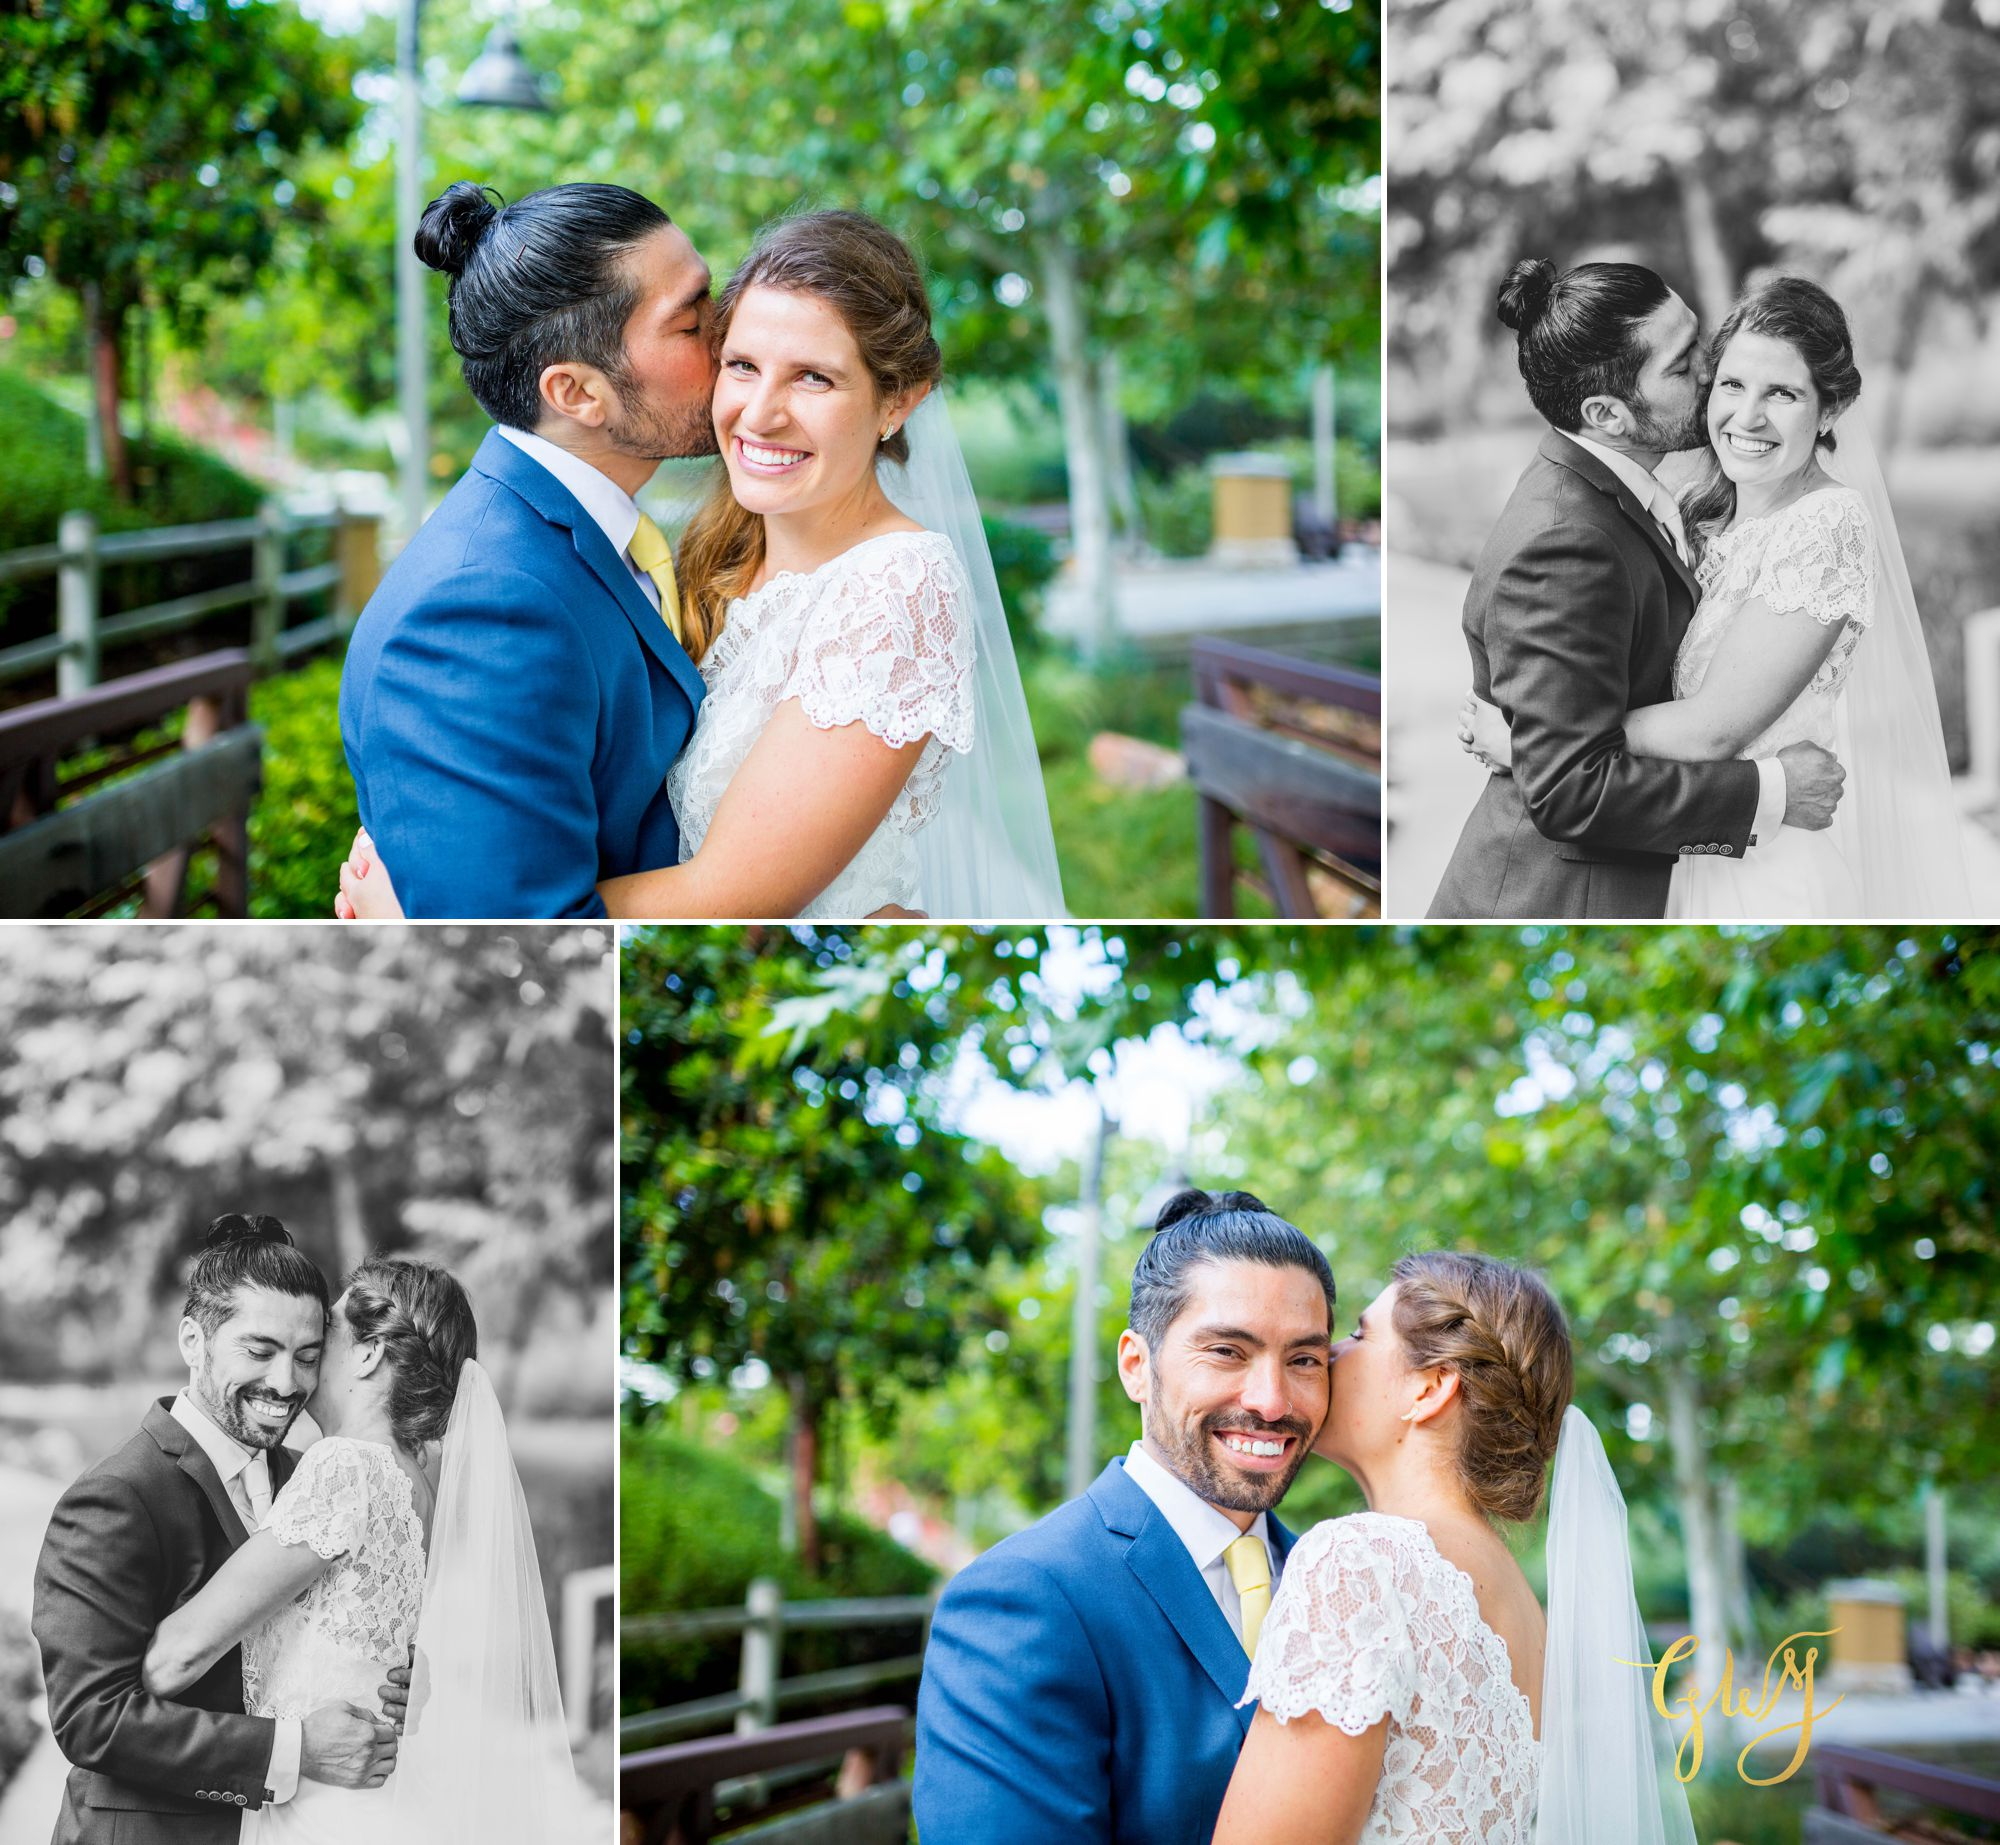 Jose + Sarah Norman P Murray Mission Viejo Summer Wedding by Glass Woods Media 16.jpg